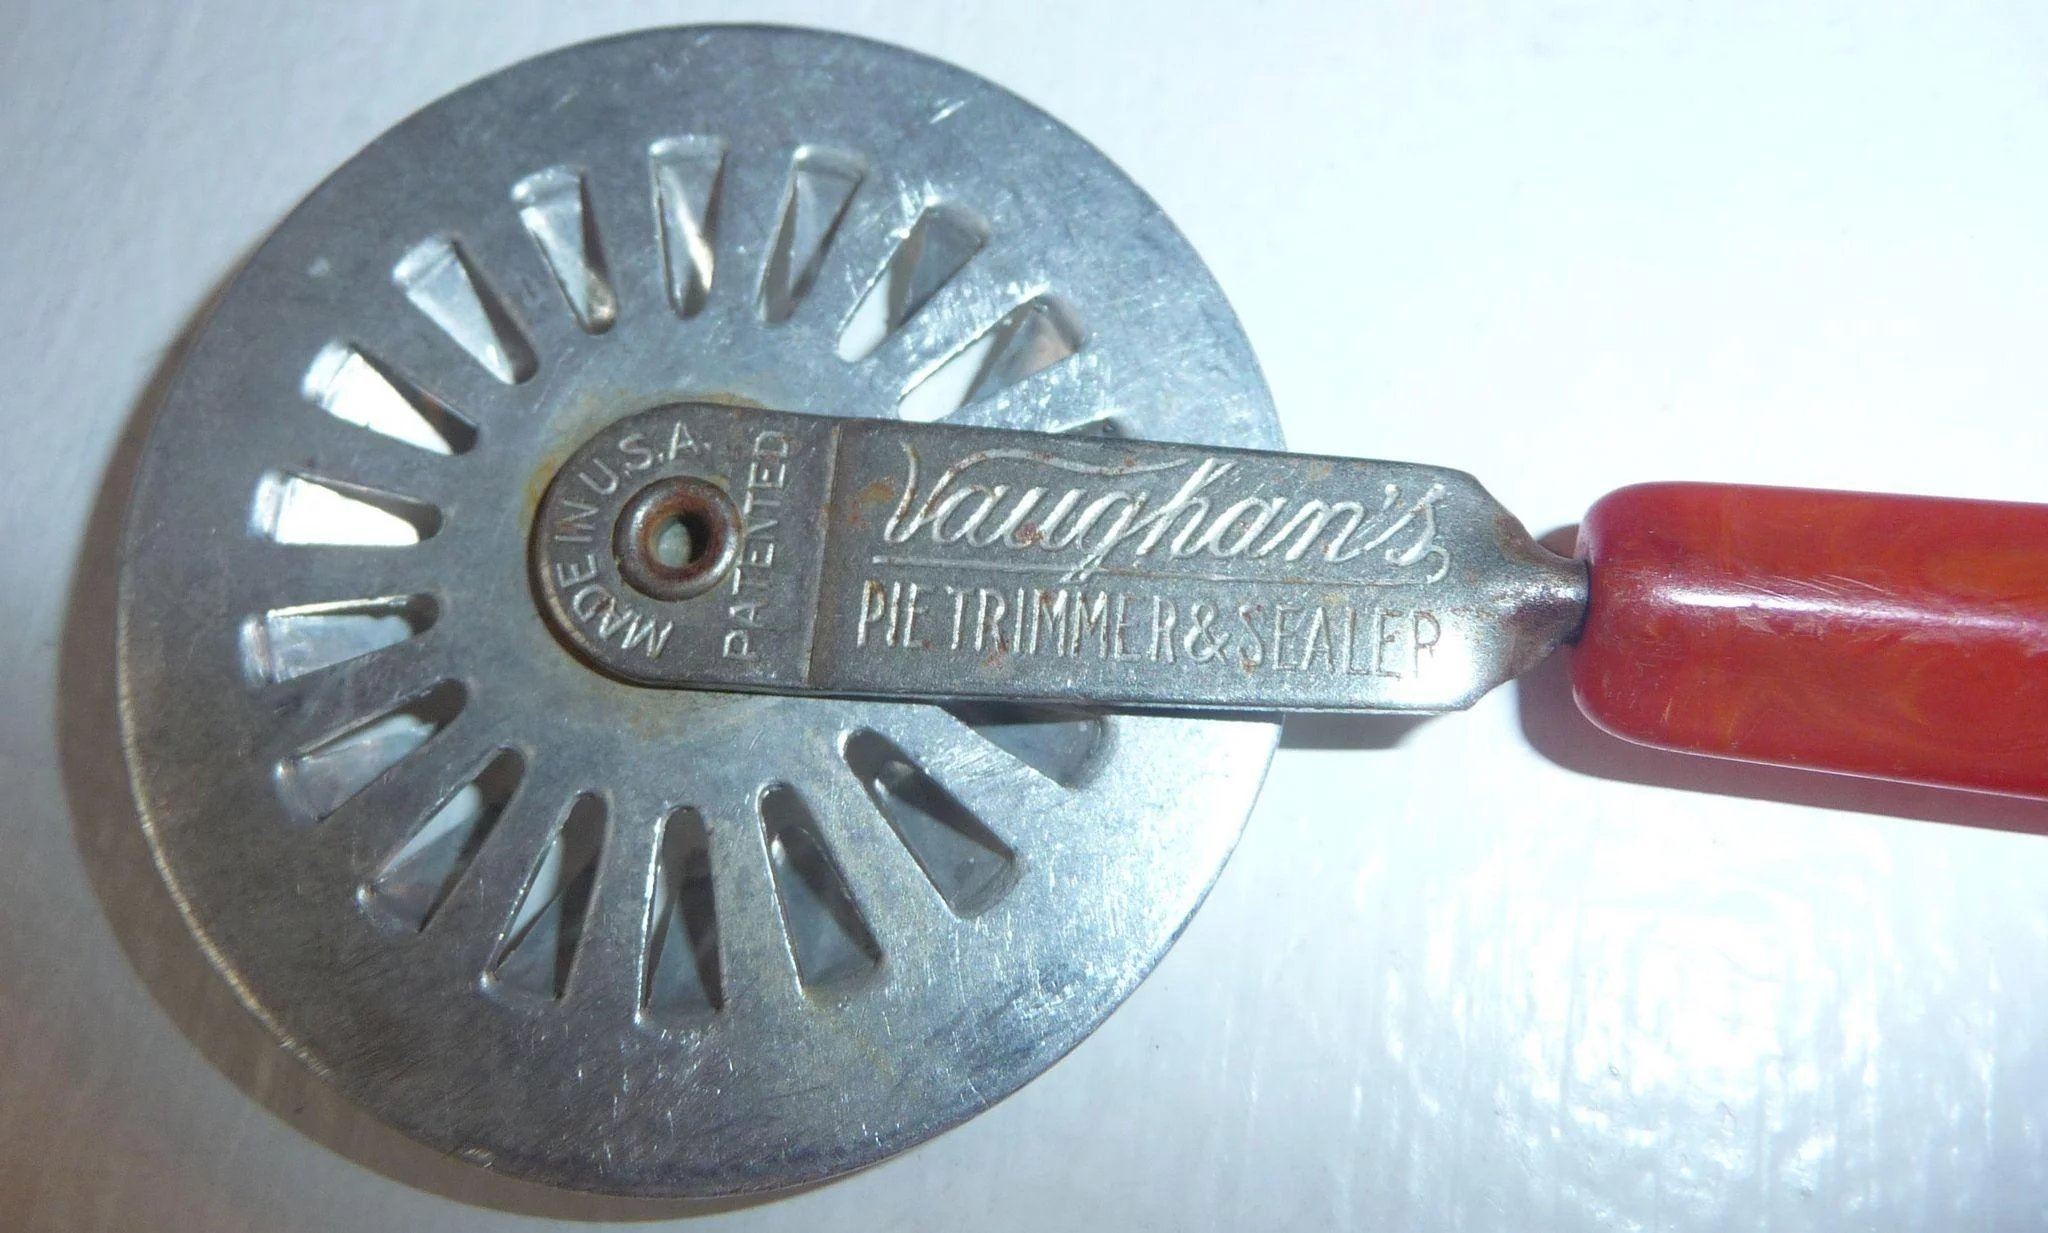 2 Bakelite Kitchen Tools Vintage Bakelite Pie Trimmer Sealer Tool ...